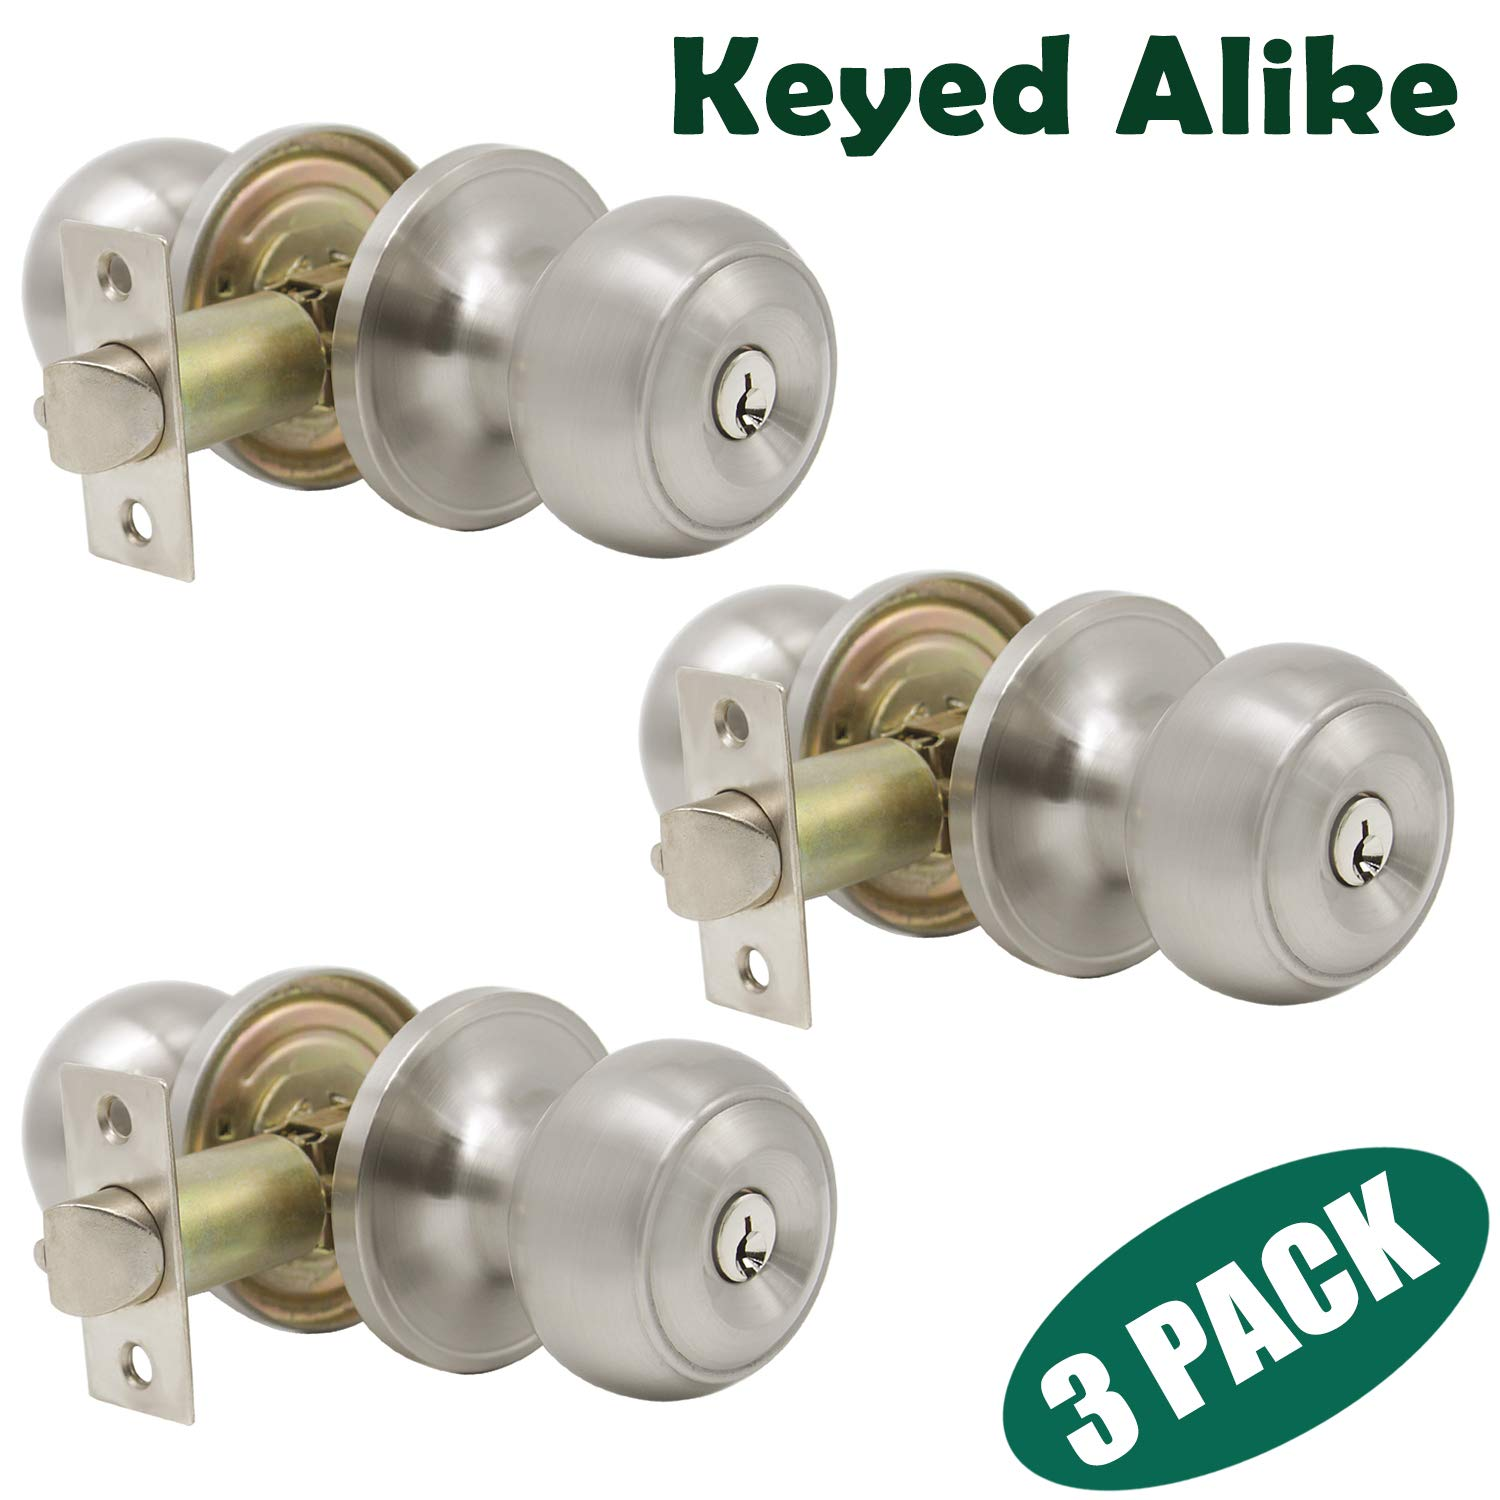 Probrico Brushed Nickel One Keyway Entrance Door Knobs Entry with Key Handles Keyed Alike Door Lockset Pack of 3